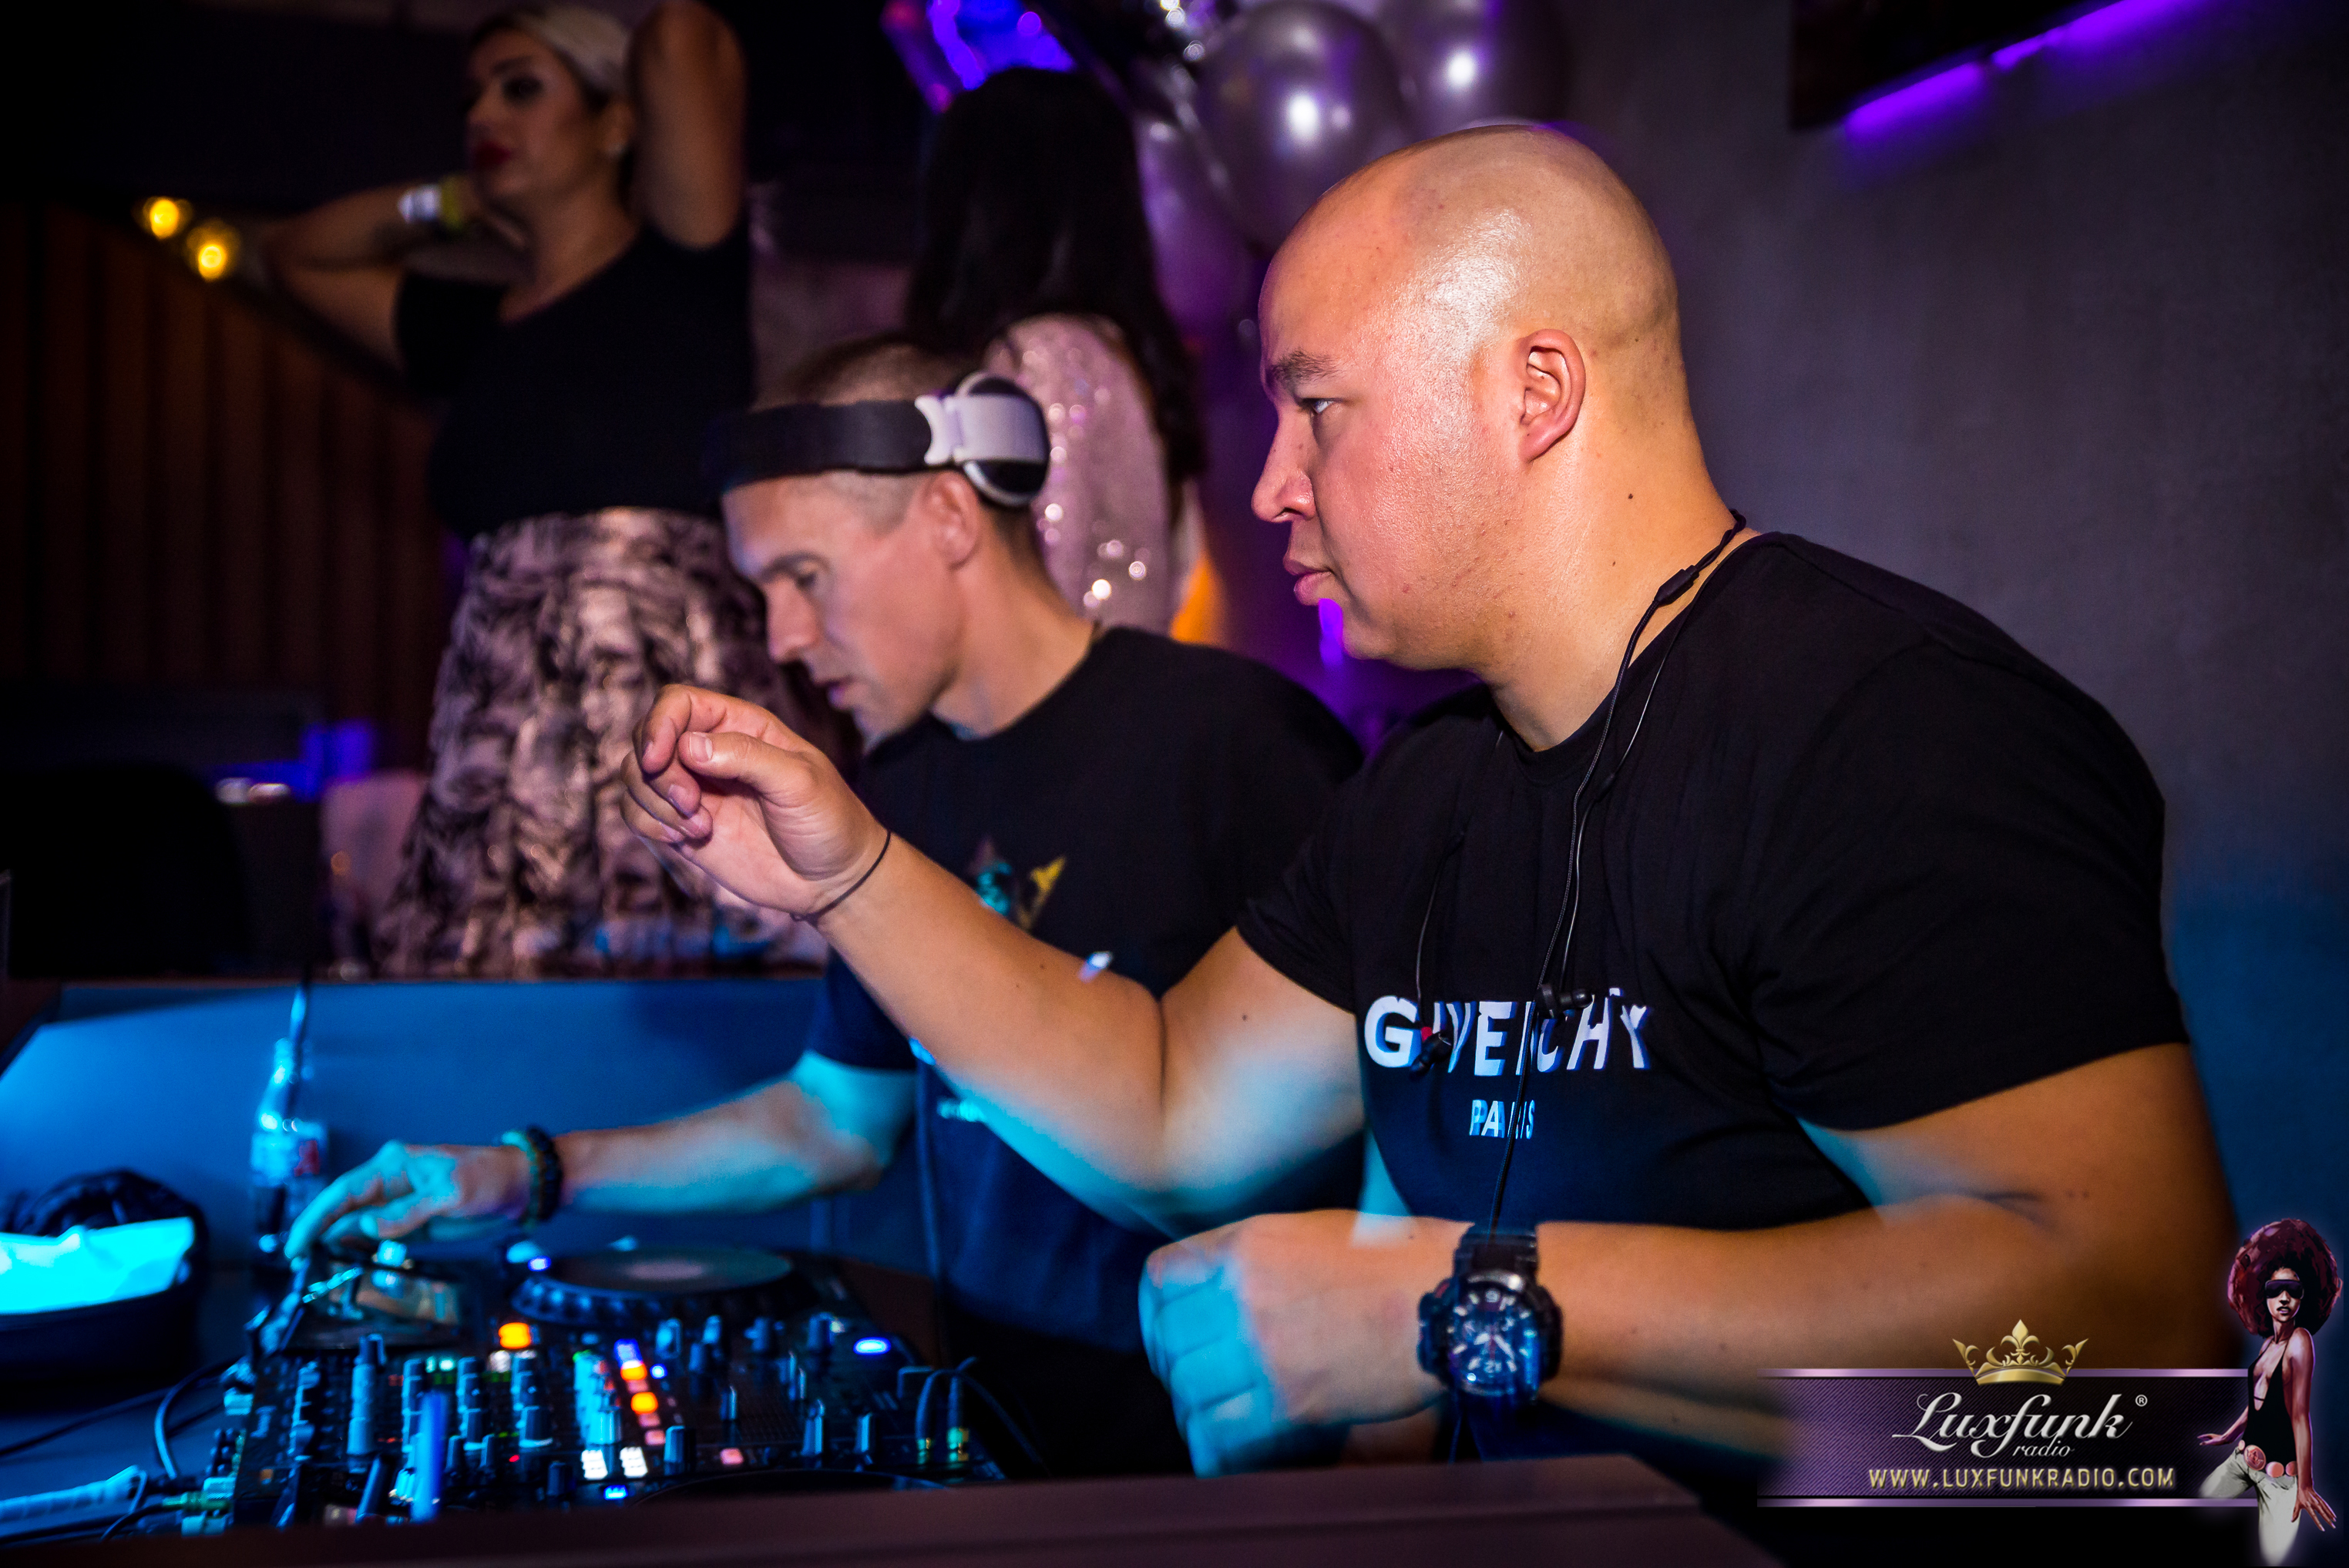 luxfunk-radio-funky-party-20191108-lock-budapest-1314